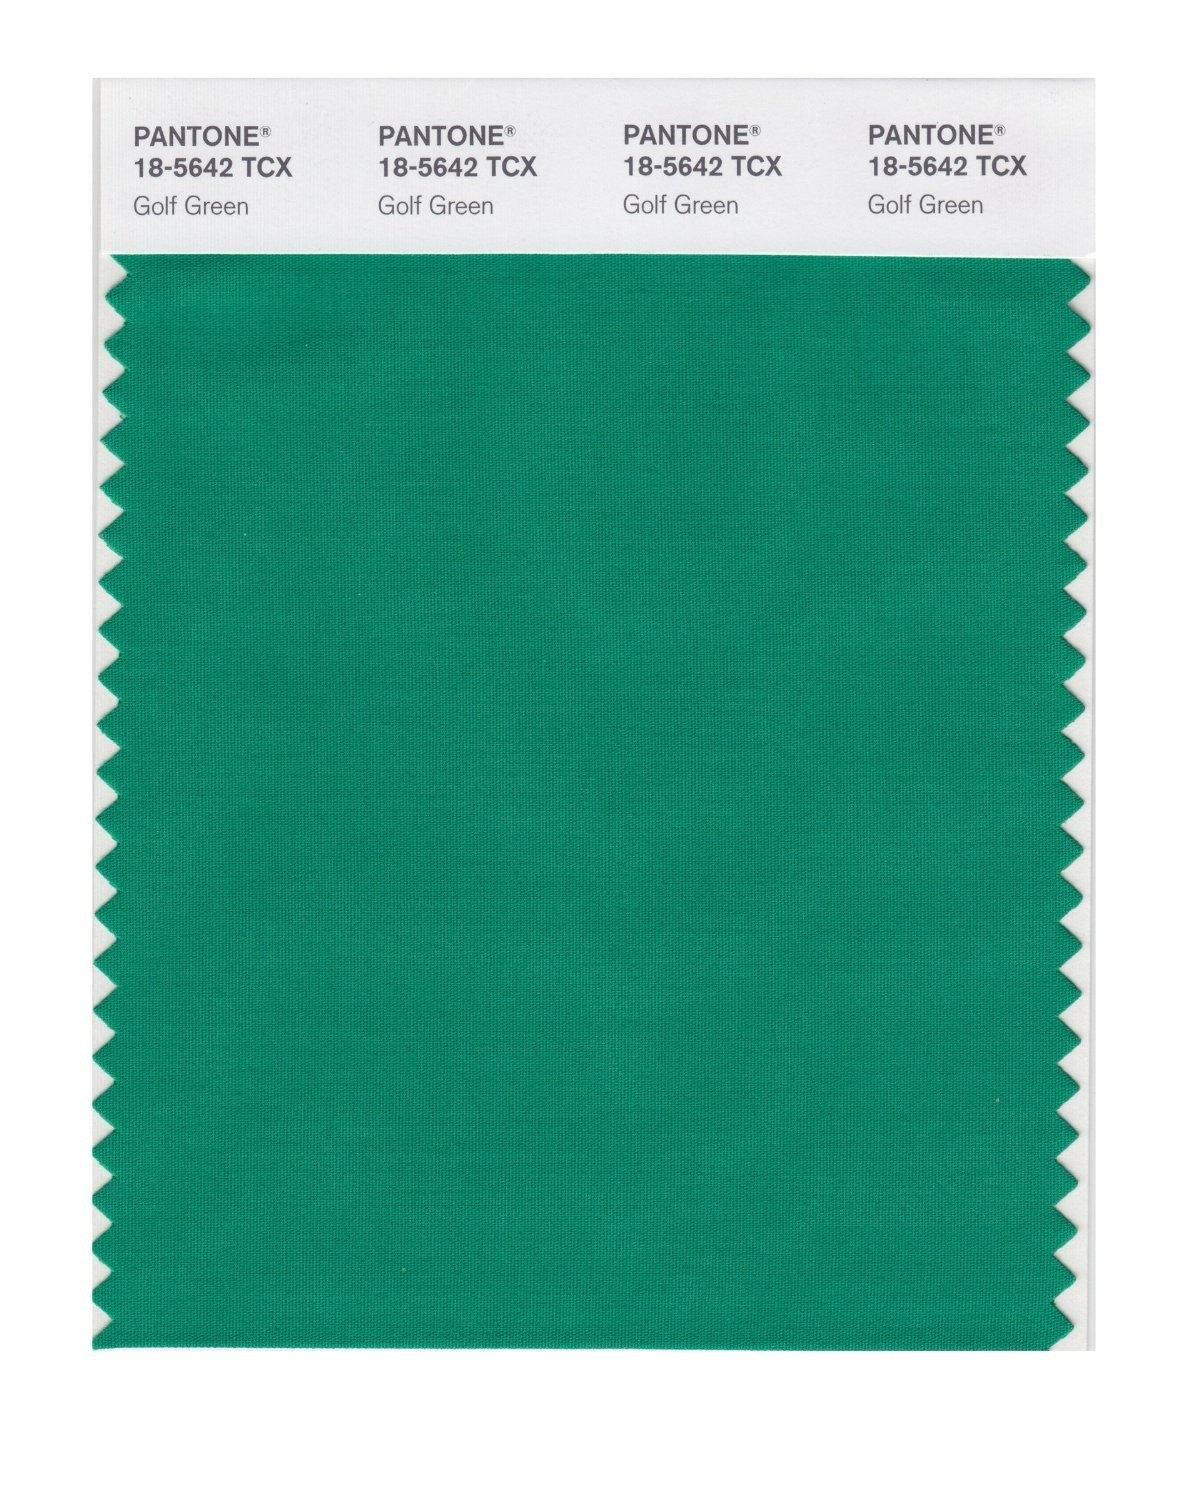 Pantone 18-5642 TCX Swatch Card Golf Green